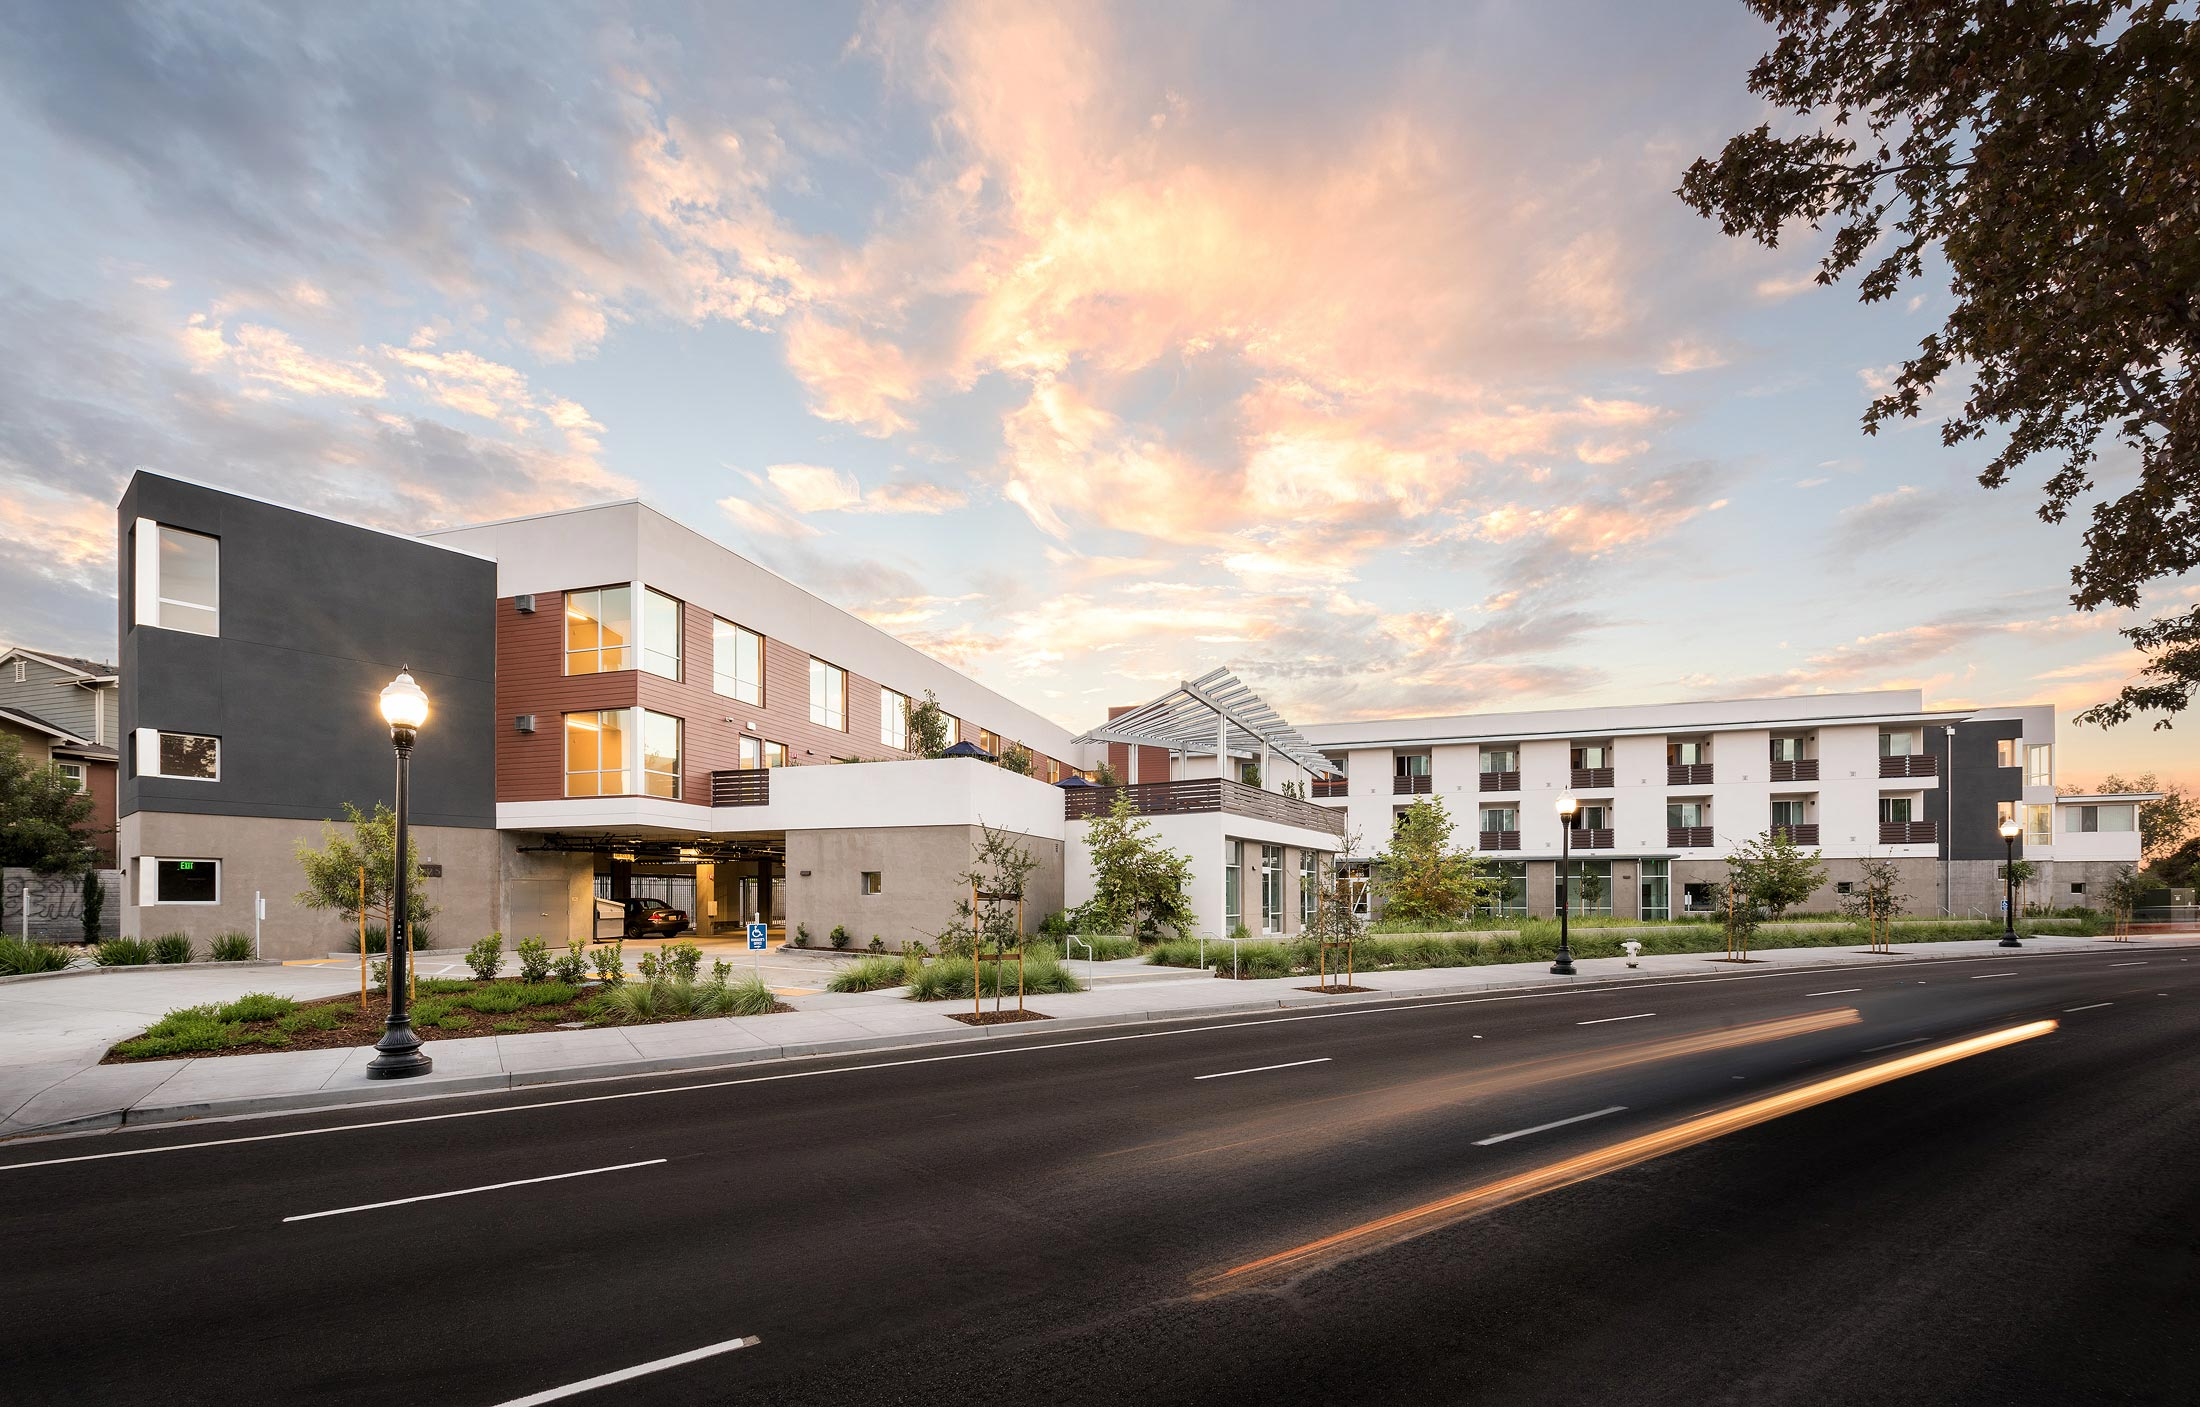 Parkside Studios Apartments in Sunnyvale California